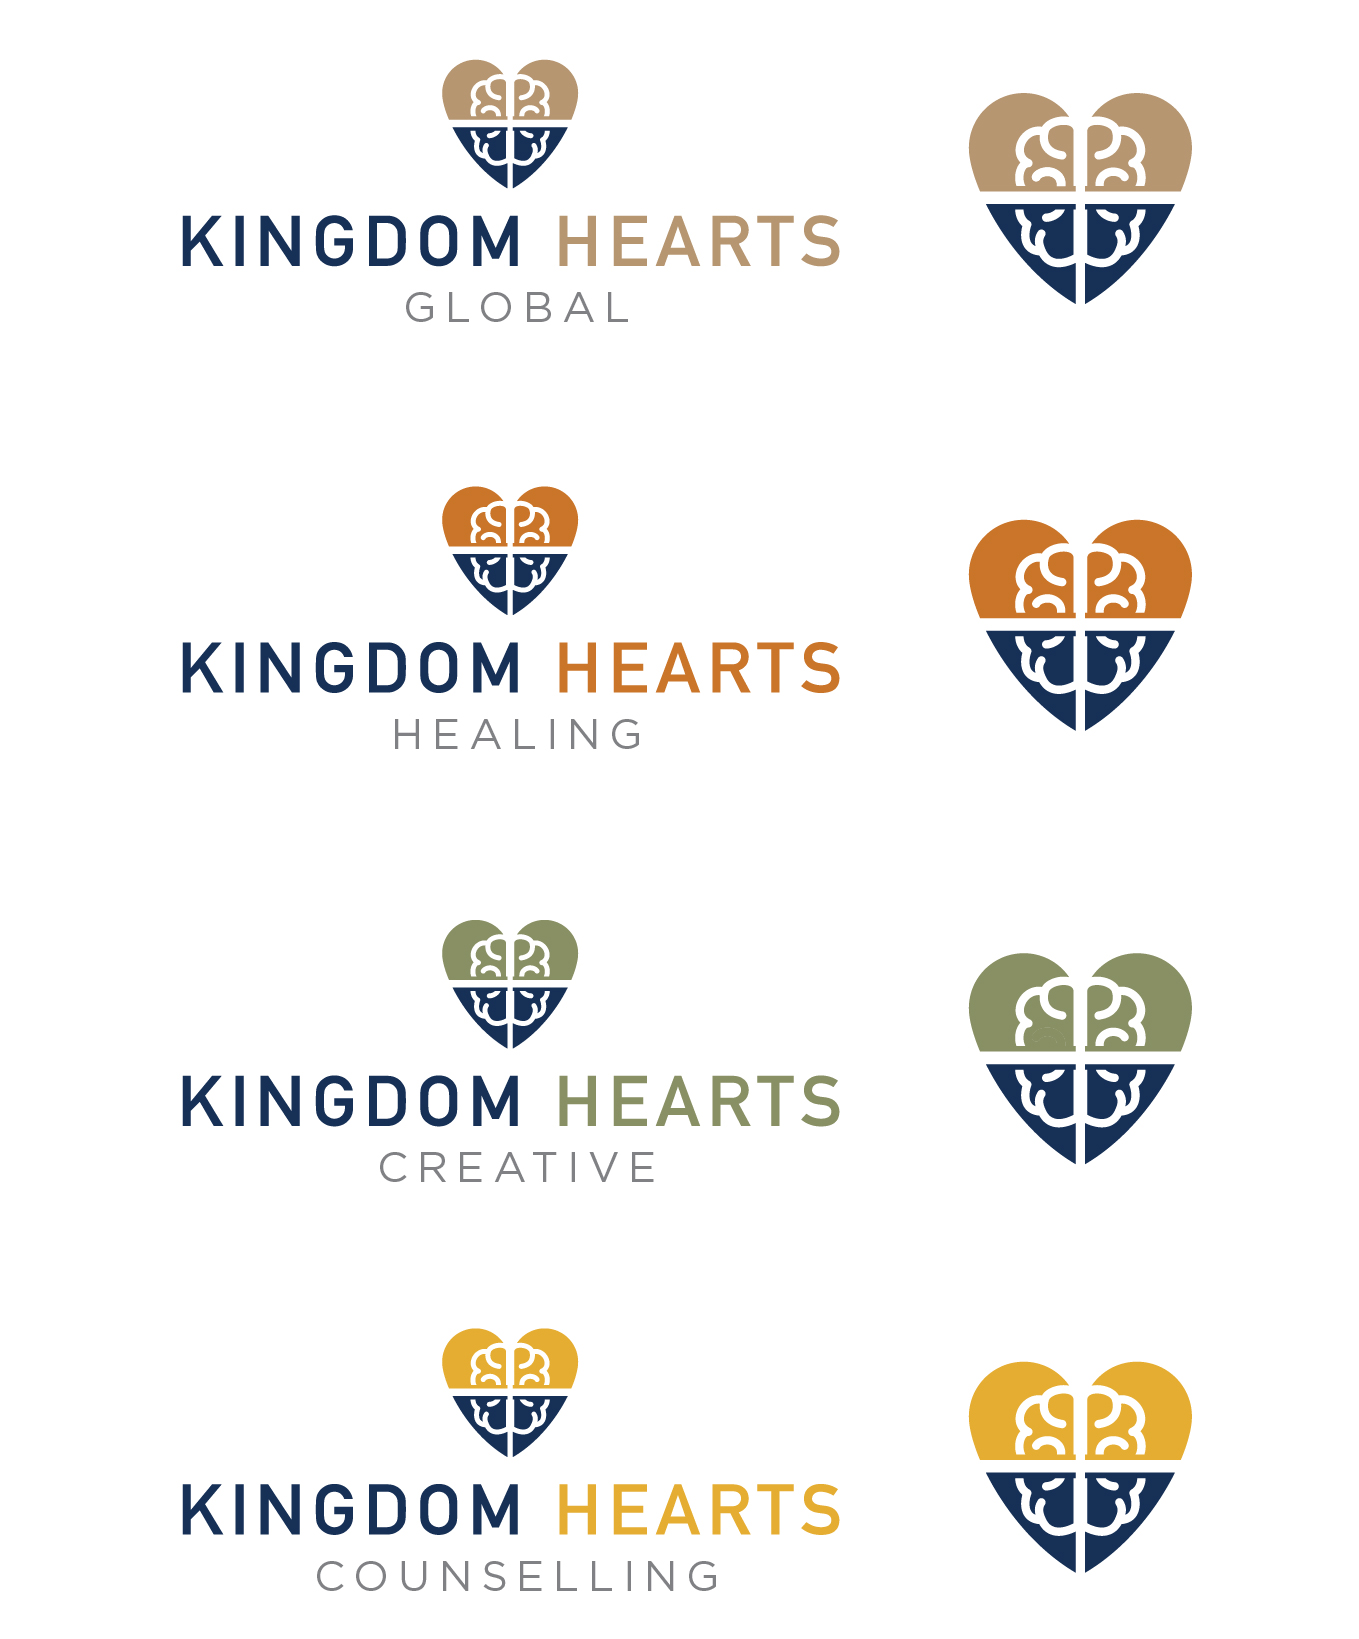 Kingdom Hearts Consulting - portfolio_square copy